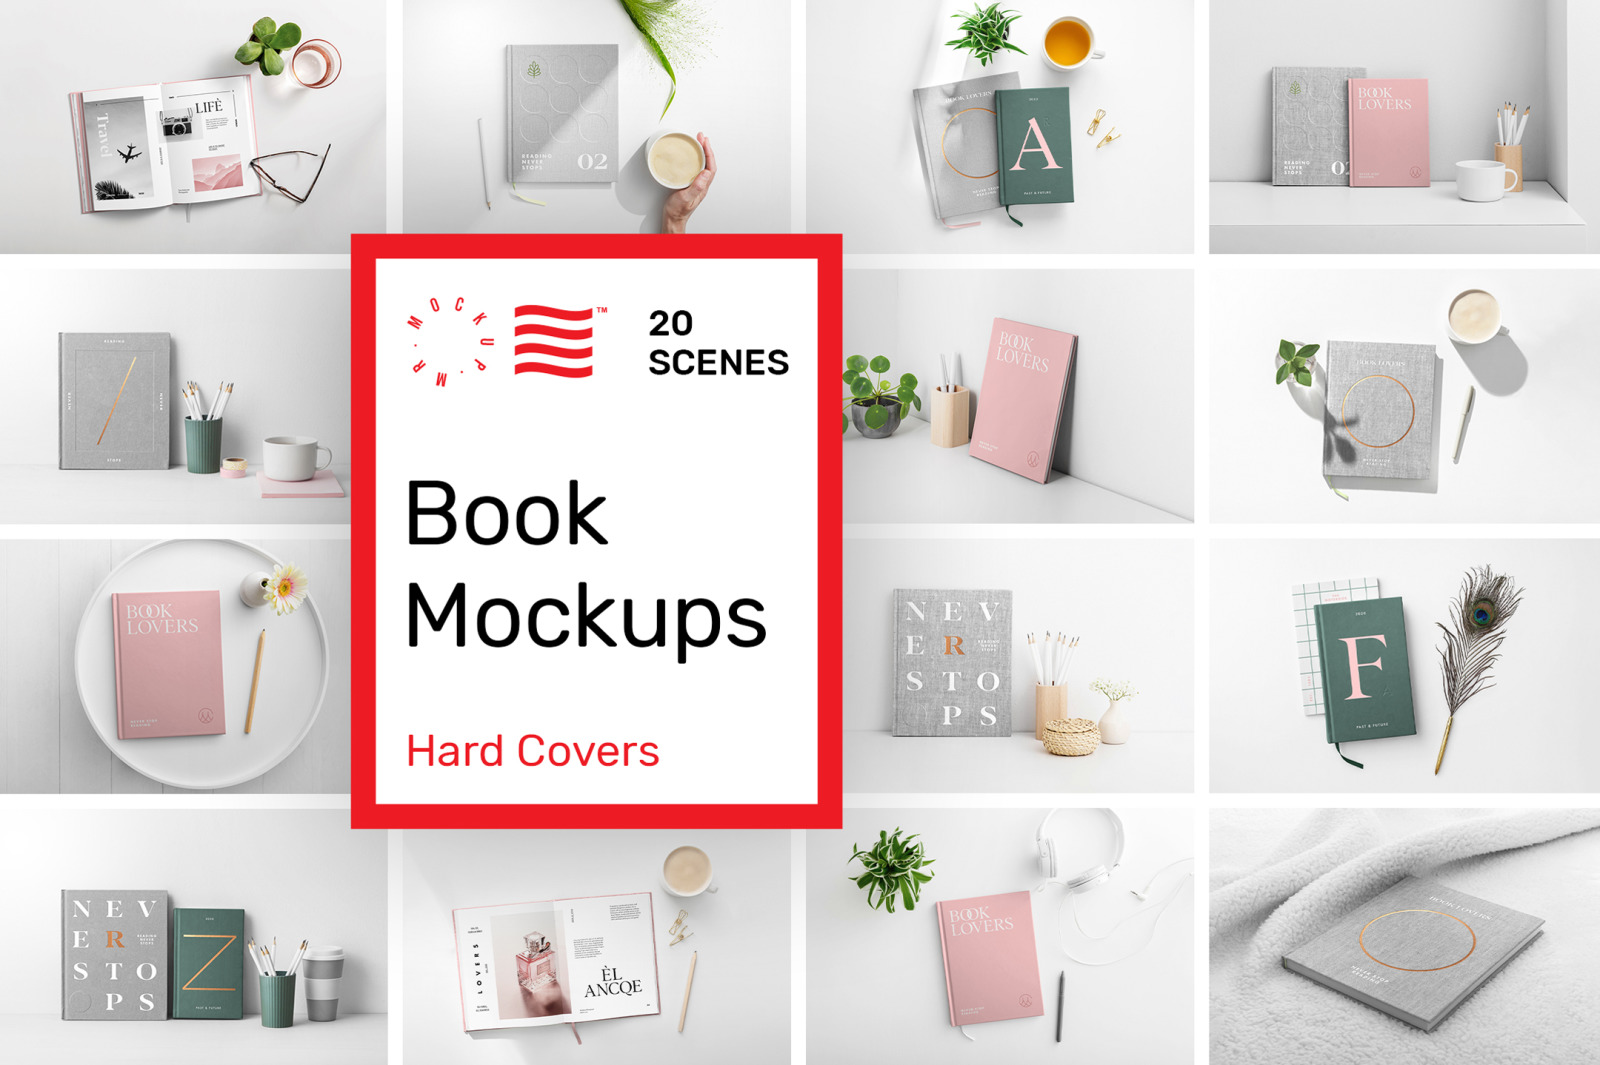 Download Book Cover Mockups Hardcover In Product Mockups On Yellow Images Creative Store PSD Mockup Templates